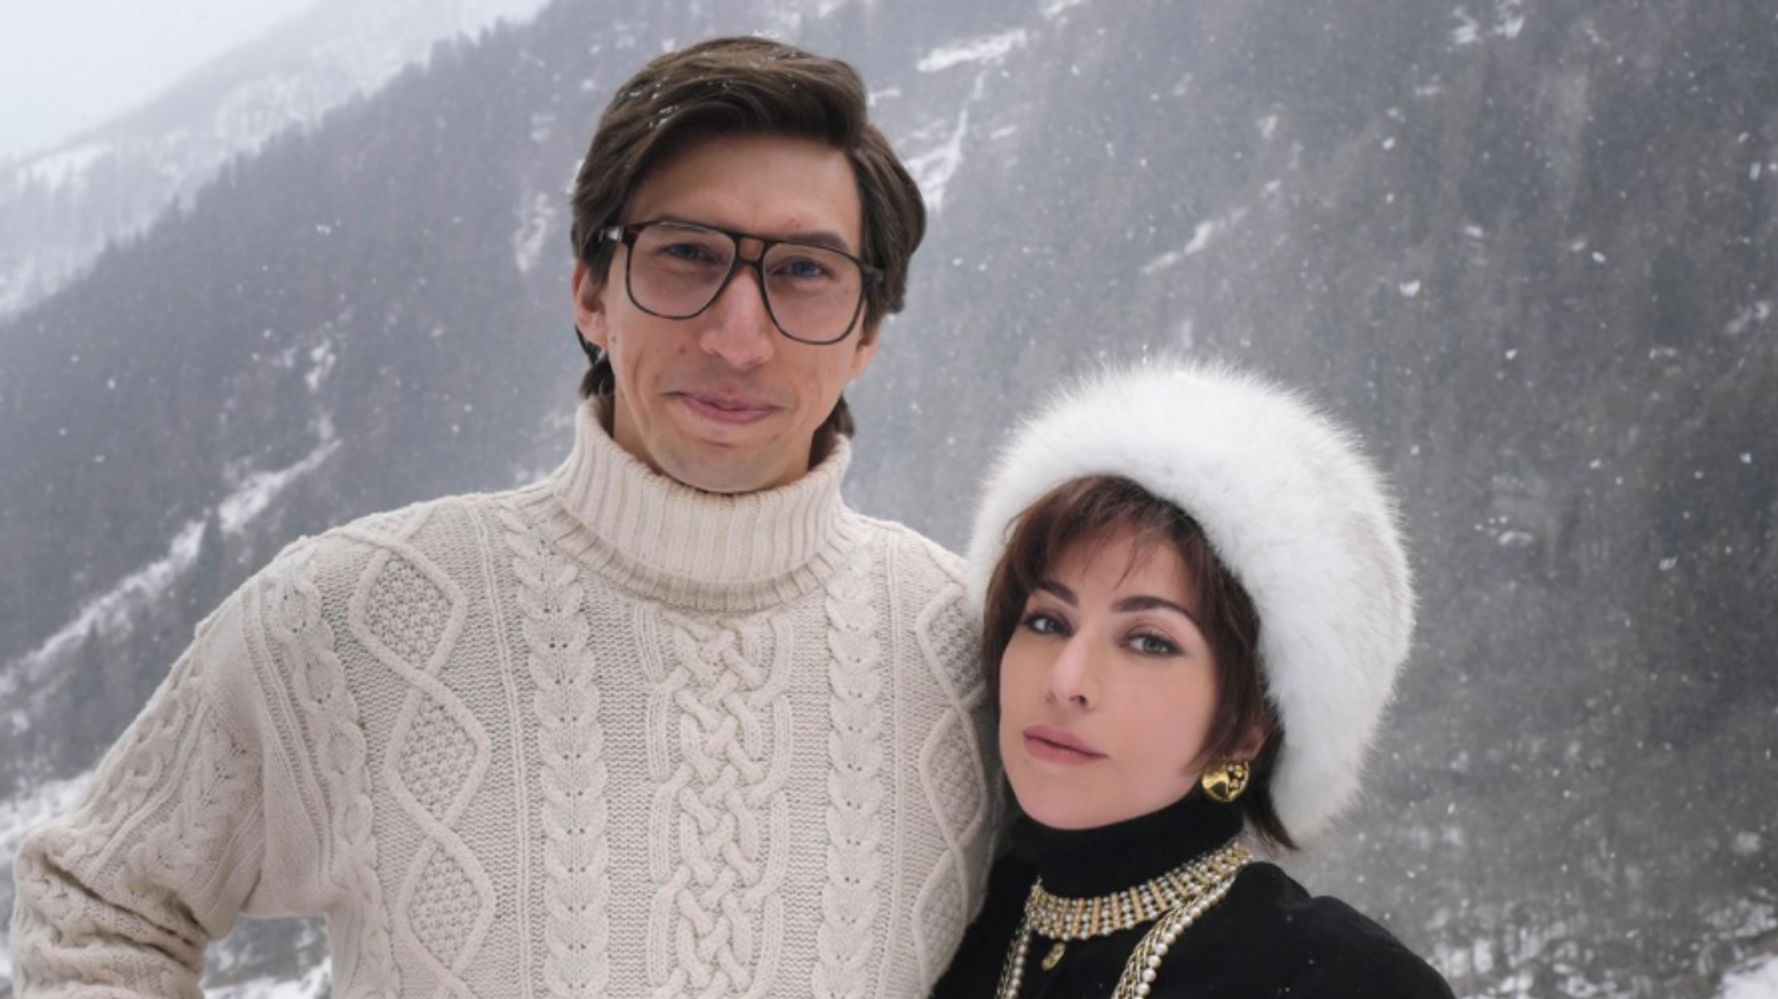 Lady Gaga's 'House Of Gucci' Photo With Adam Driver Has Inspired Oscar-Worthy Memes - HuffPost